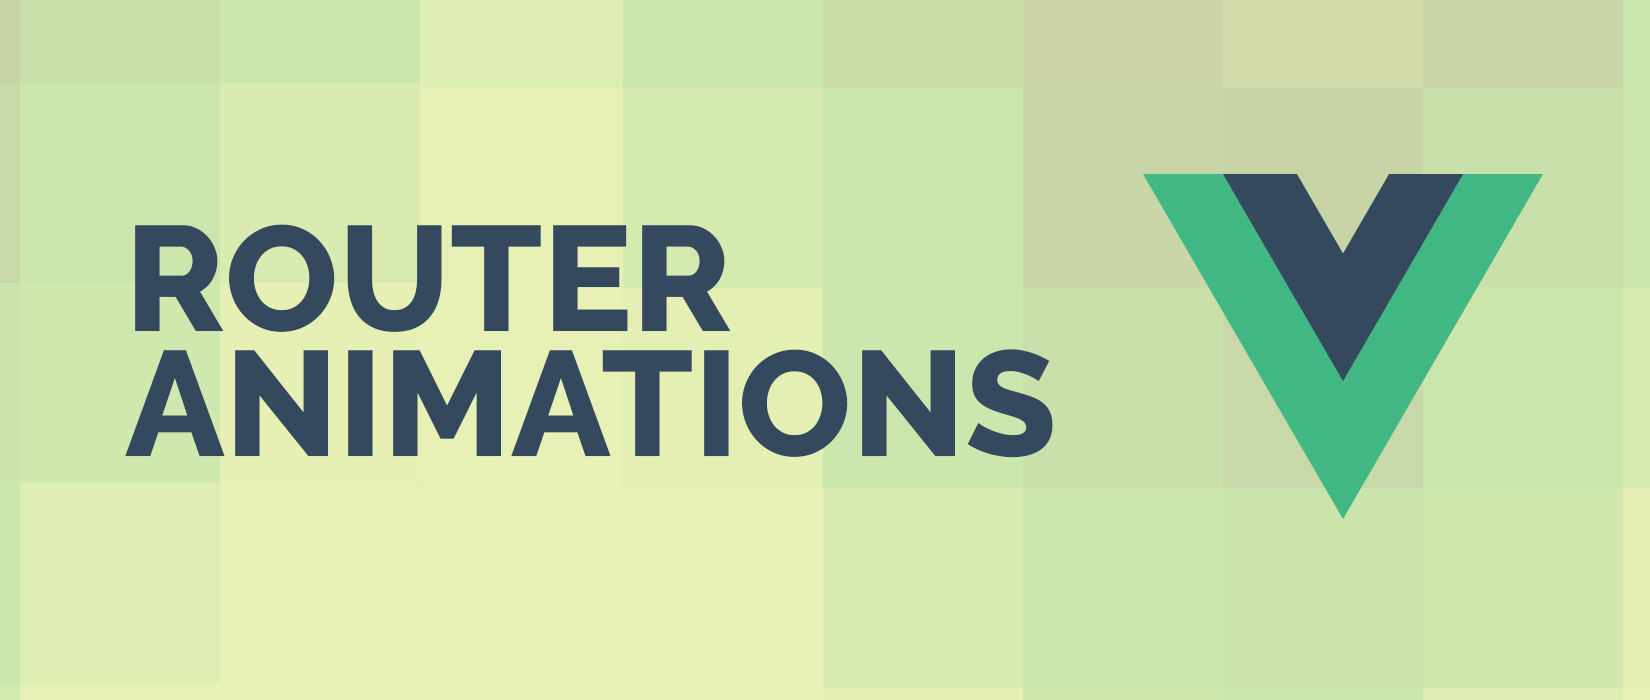 Learn how to Create Vue Router Animations - Transitions